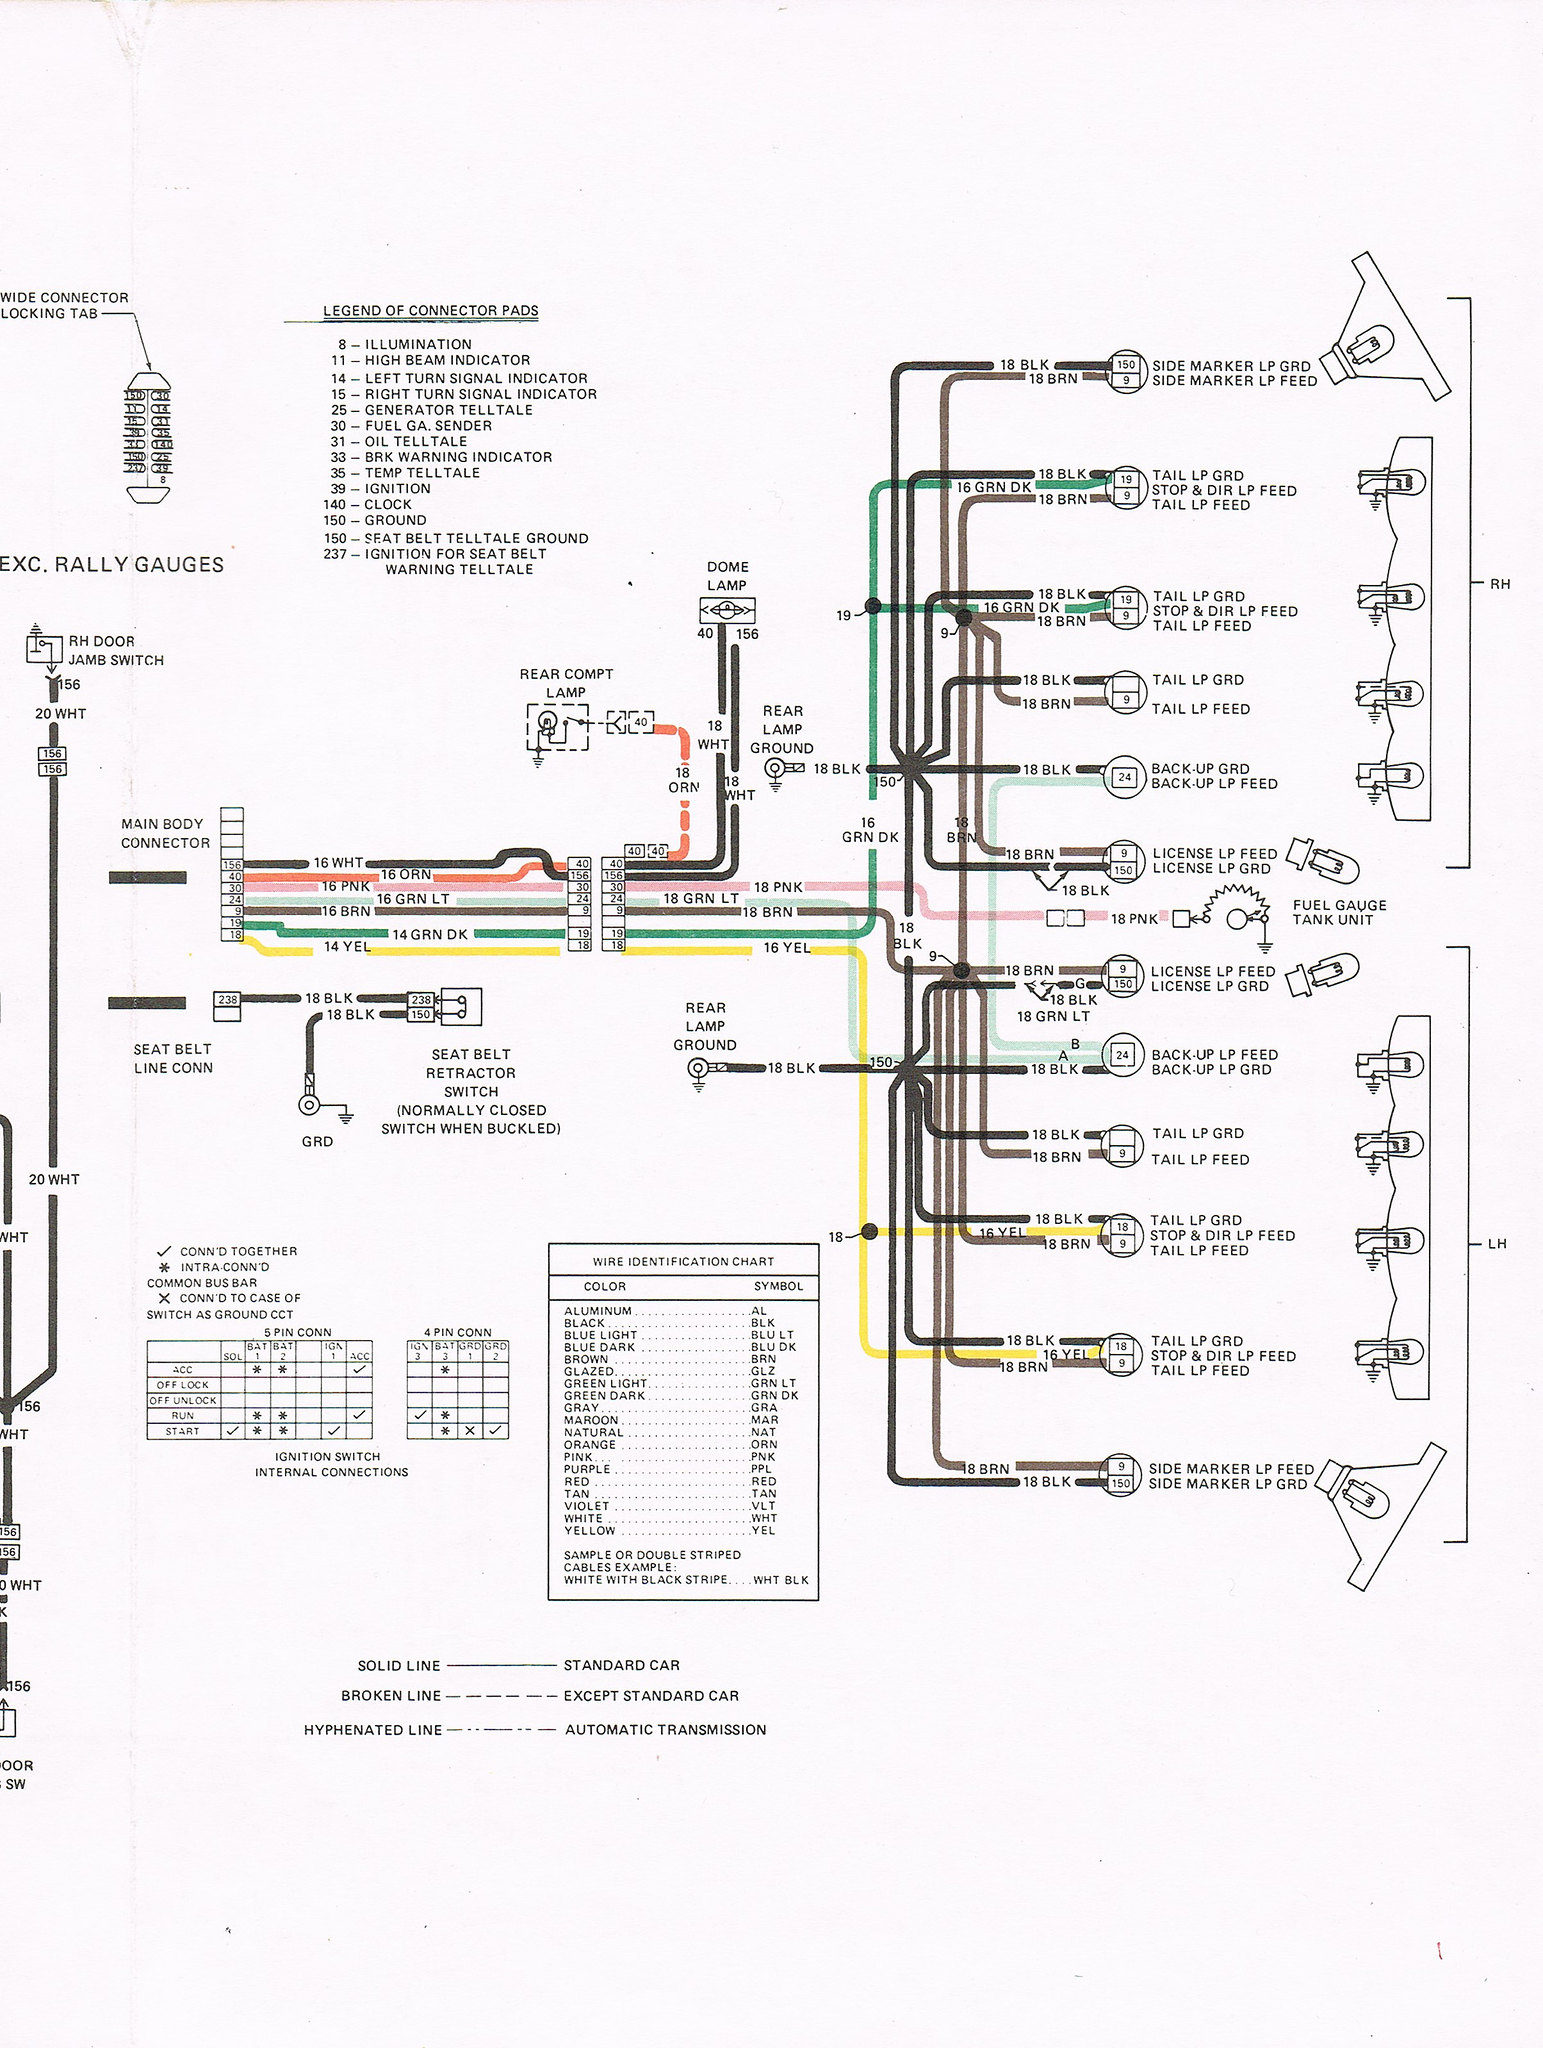 1980 Firebird Esprit Wiring Main Harness Diagram : 48